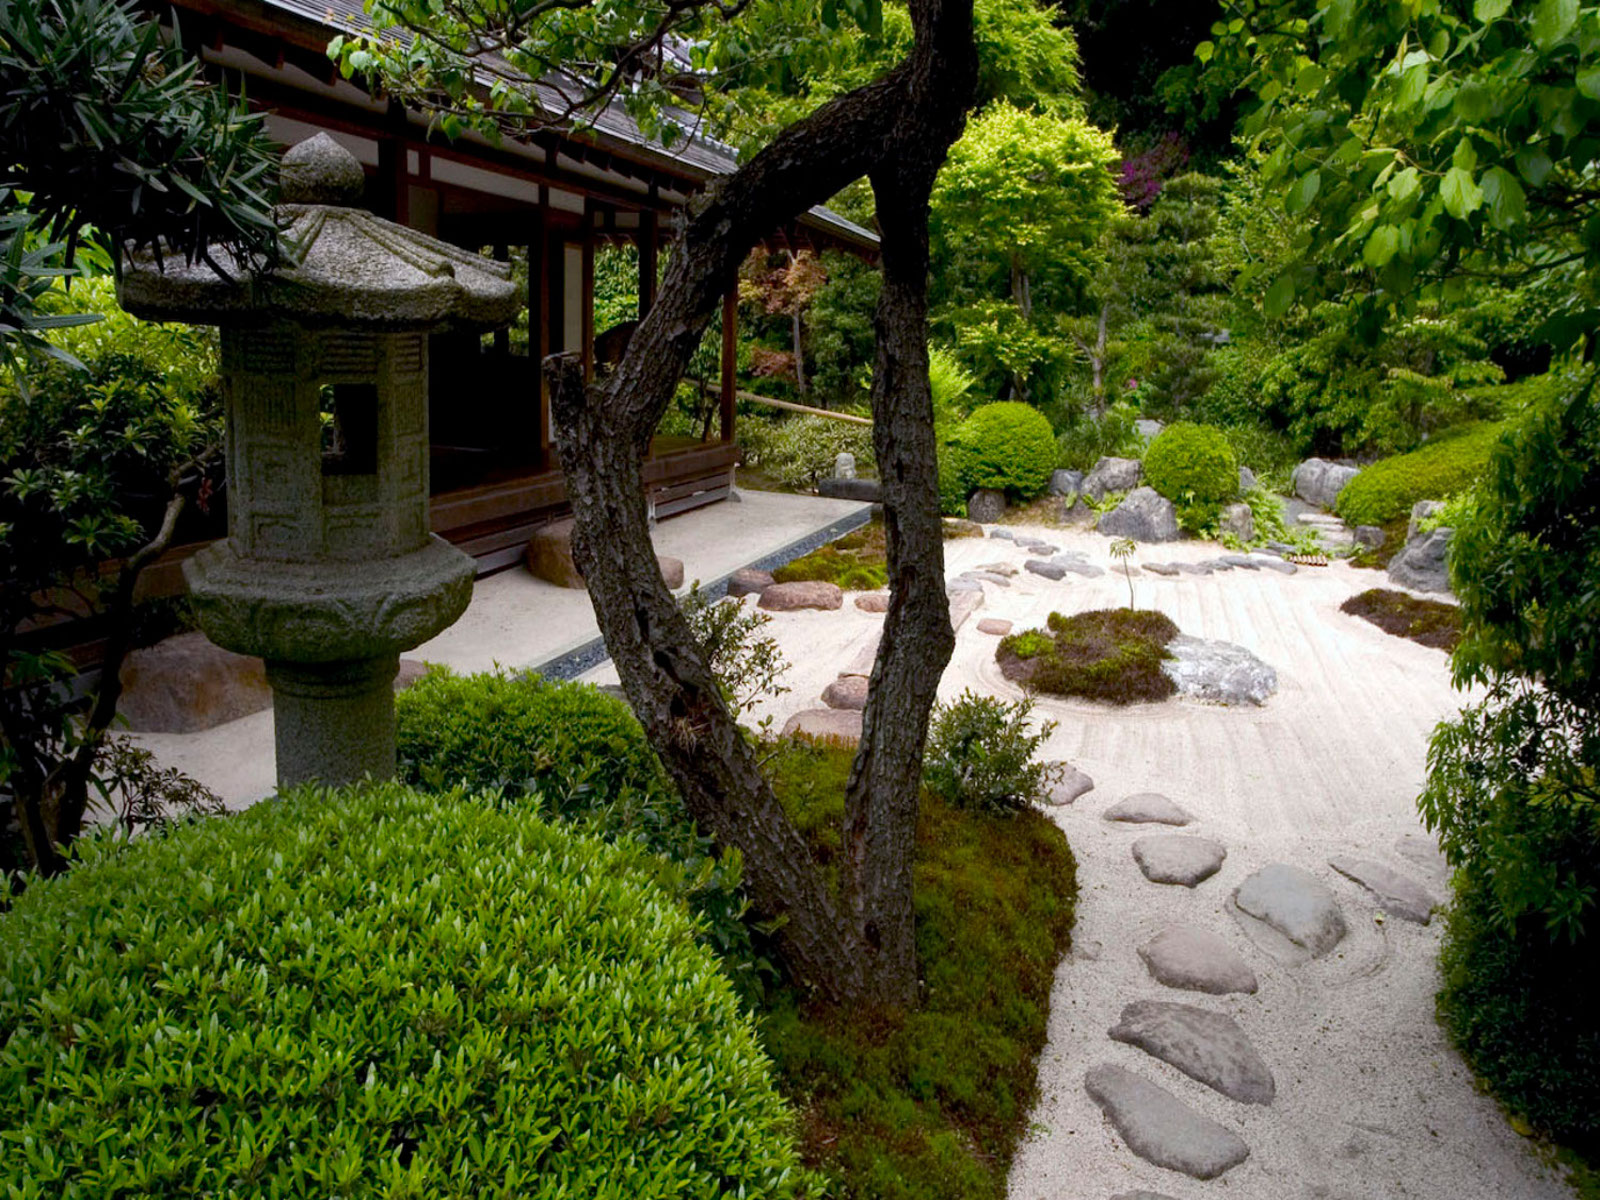 Zen garden wallpaper hd wallpaper pictures gallery for Japanese garden ideas